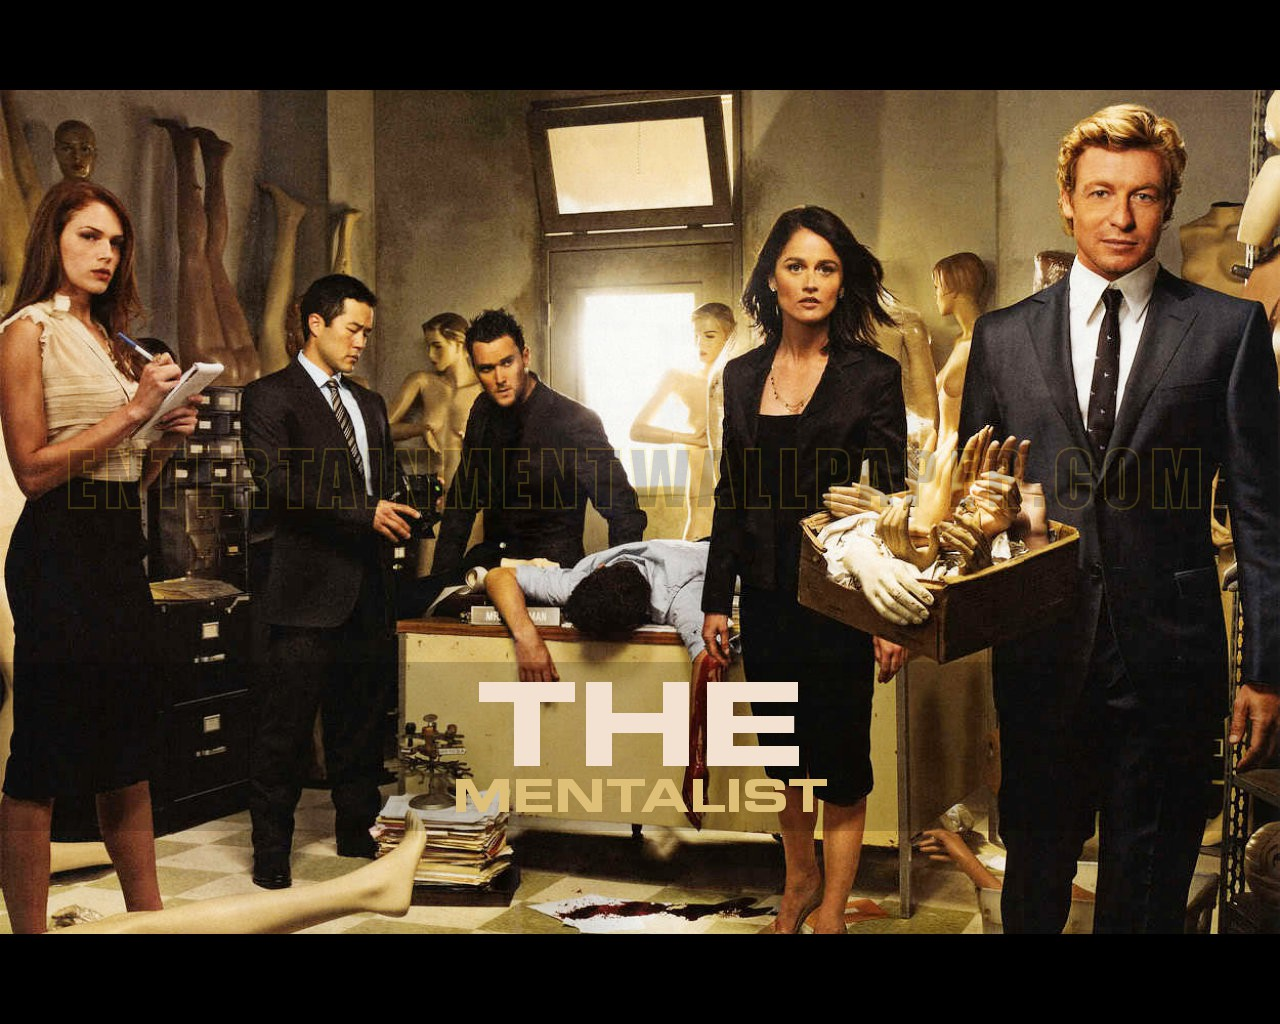 The Mentalist Poster Gallery1